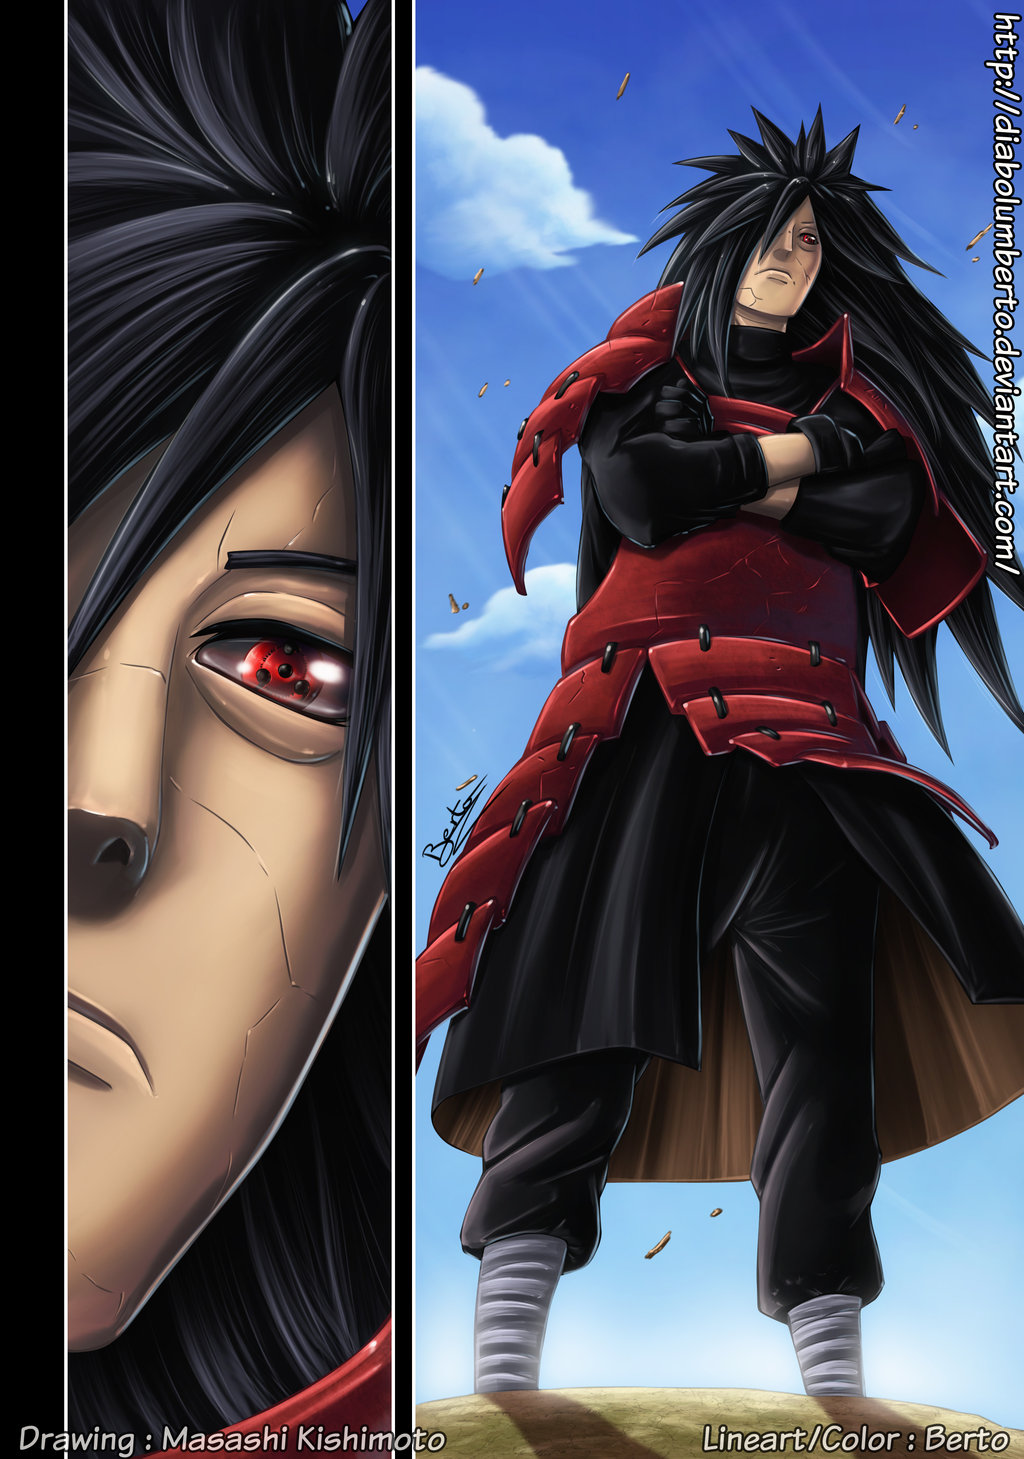 http://4.bp.blogspot.com/-kNjOMceU-5U/TrMVyeKkJQI/AAAAAAAABZg/fMmsmEohf0s/s1600/best+wallpaper+of+madara+uchiha+_mangekyou+sharingan+wallpapers.jpg